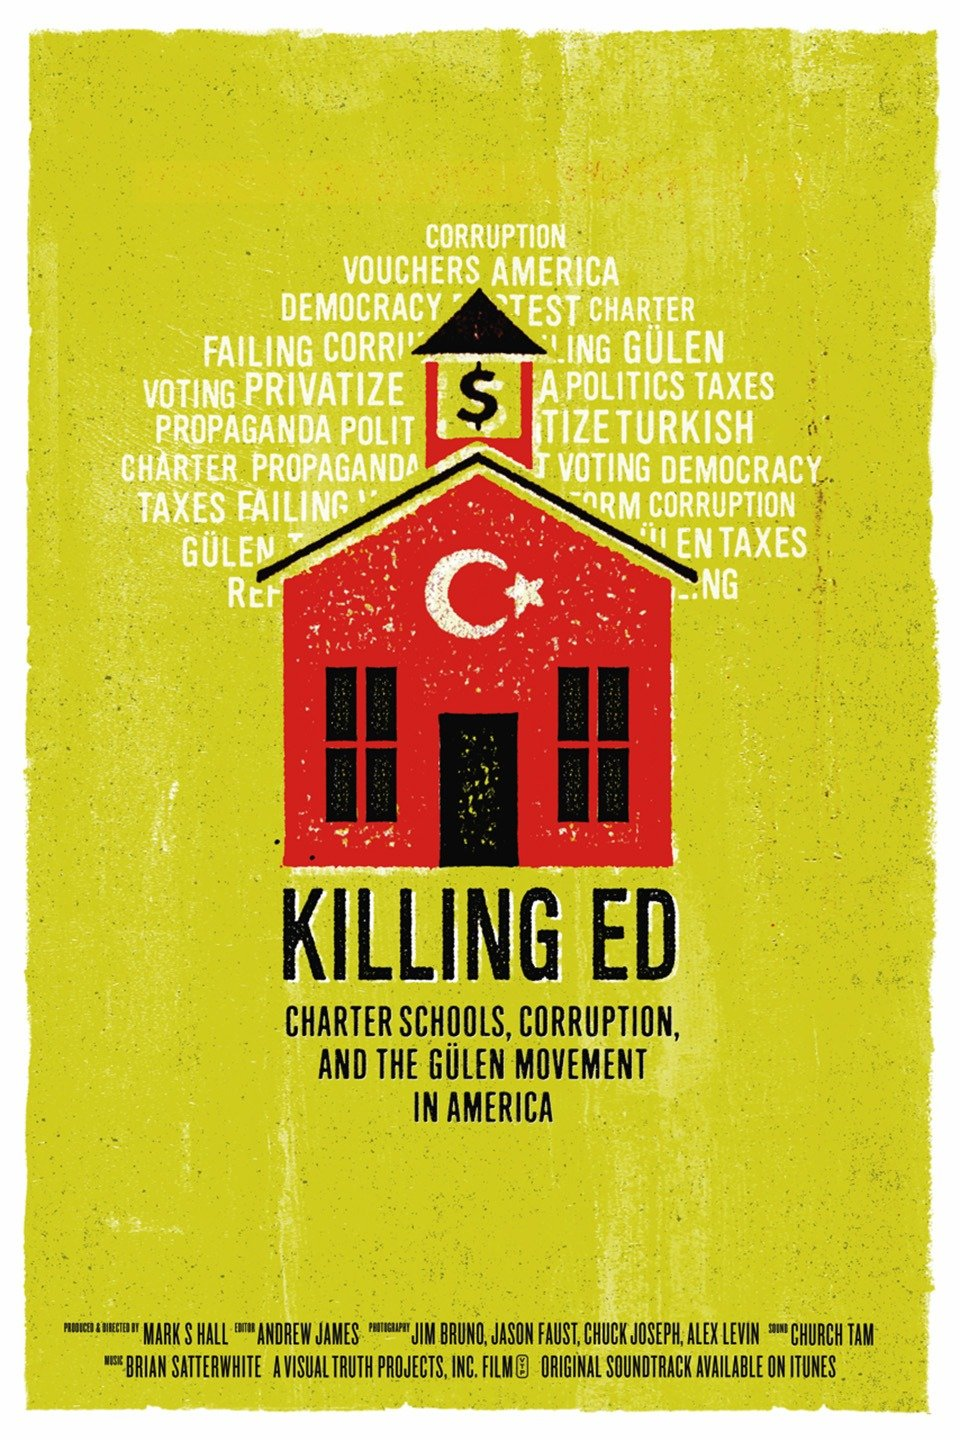 Gulen Schools and Islamic Domination in America